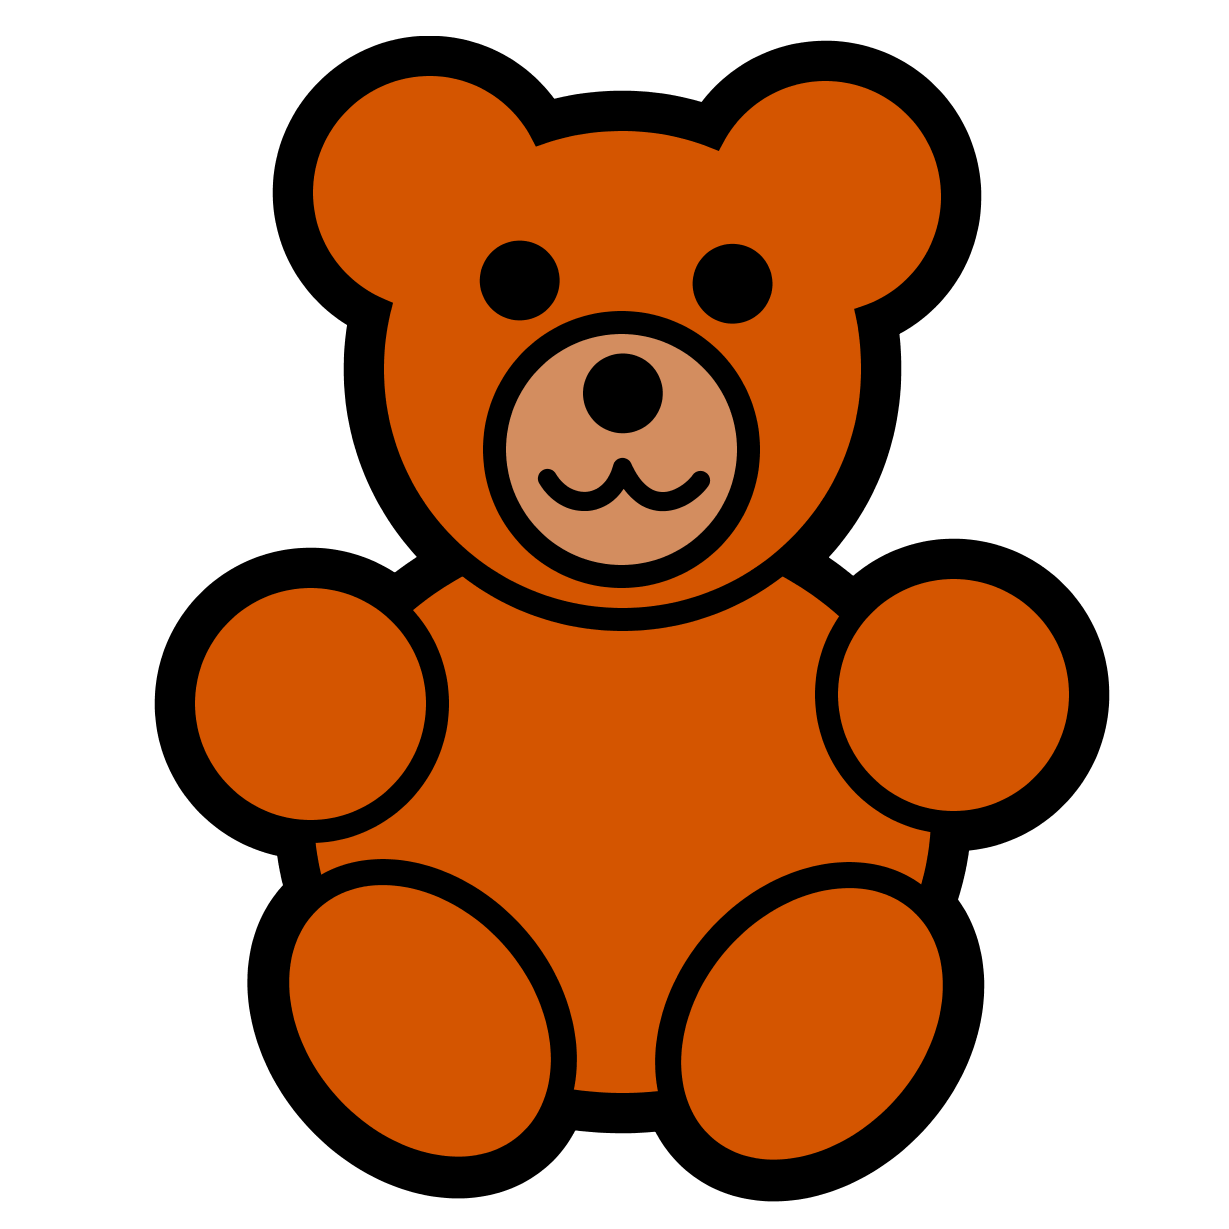 Teddy Bear clipart #16, Download drawings